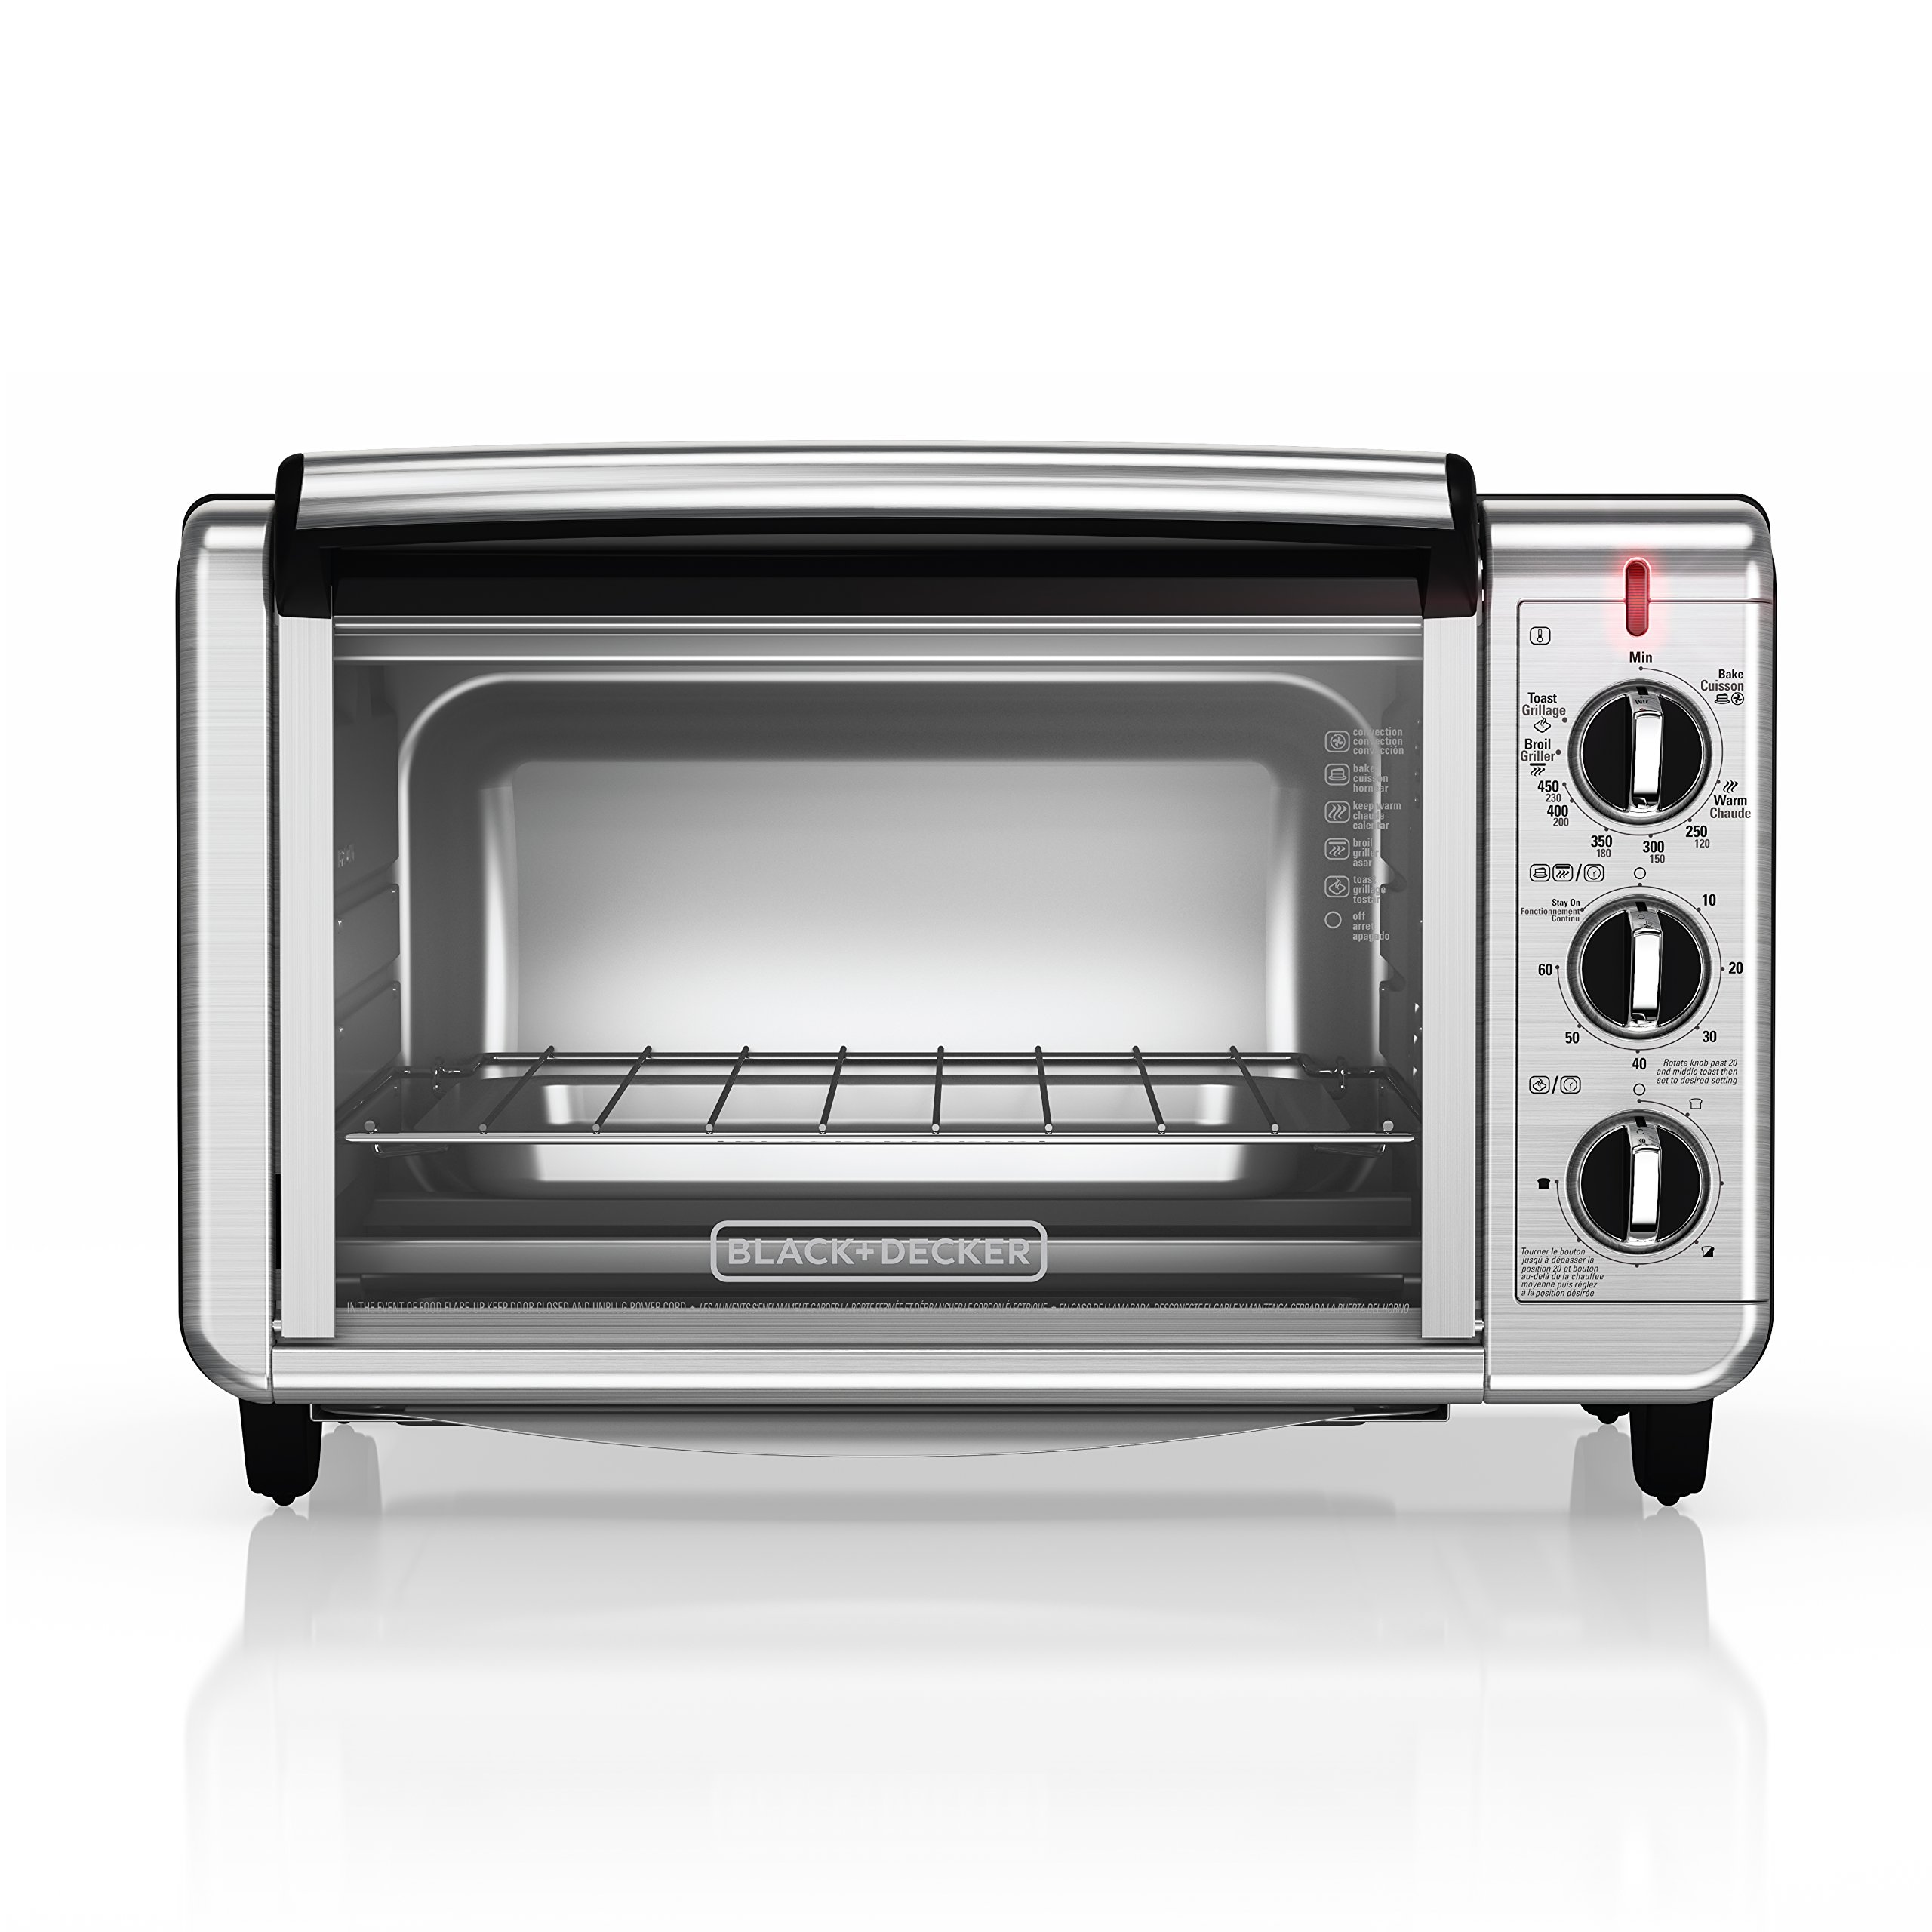 TO2050S BLACK+DECKER 6-Slice Convection Countertop Toaster Oven Stainless Steel//Black